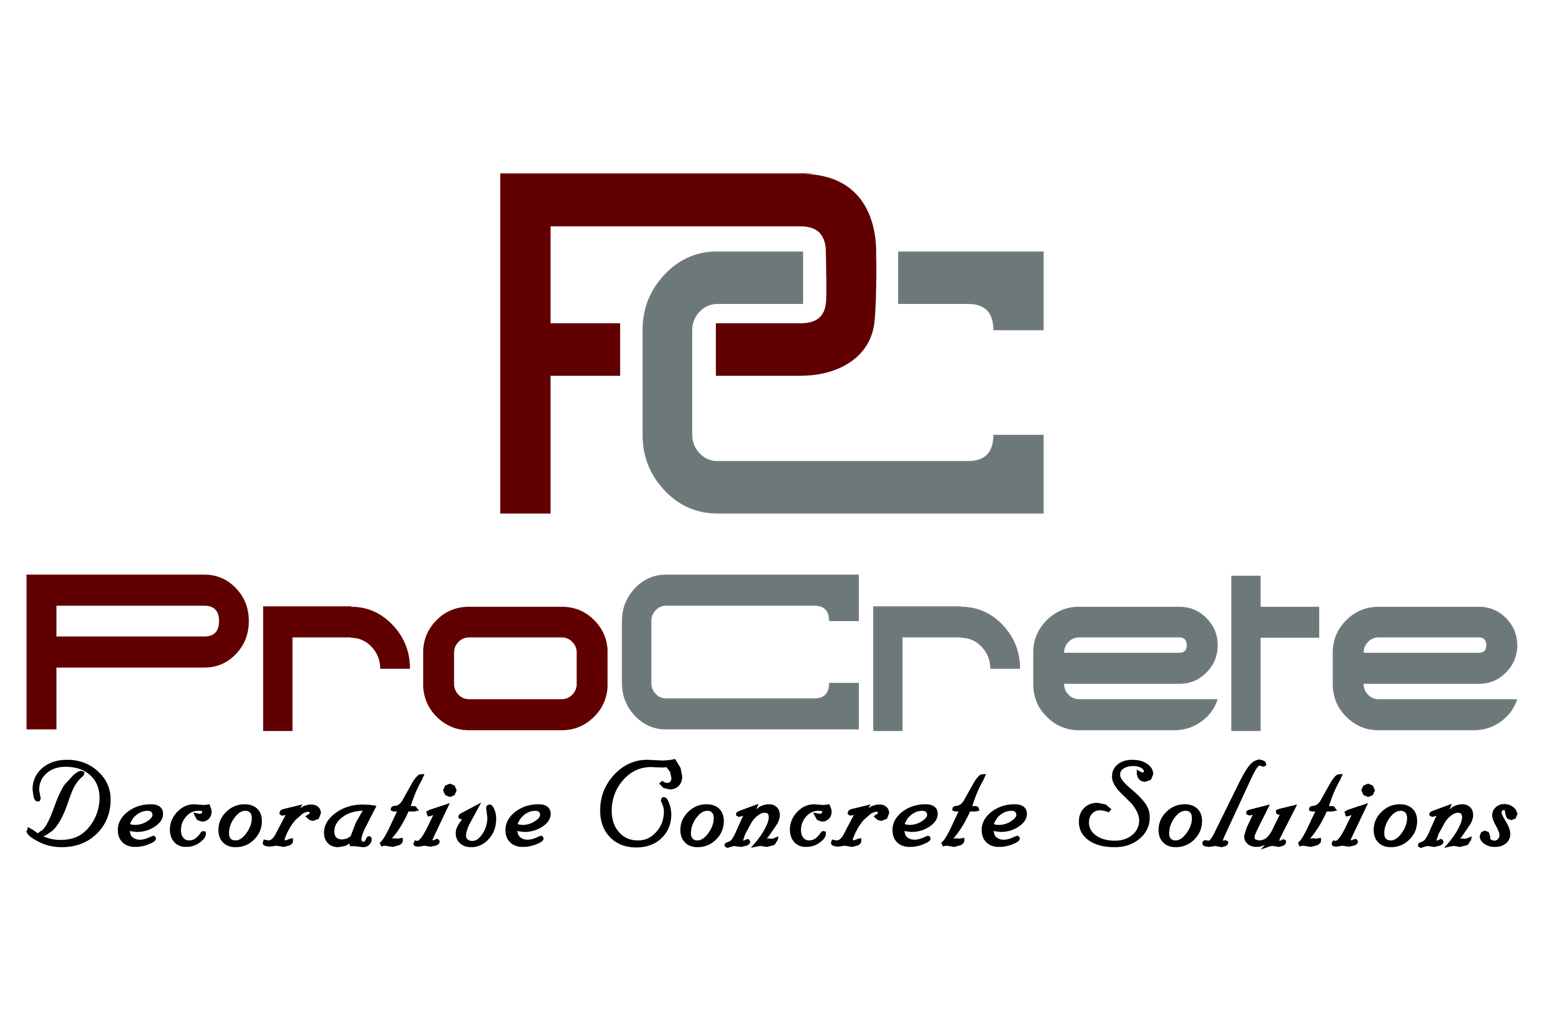 ProCrete Decorative Concrete Solutions